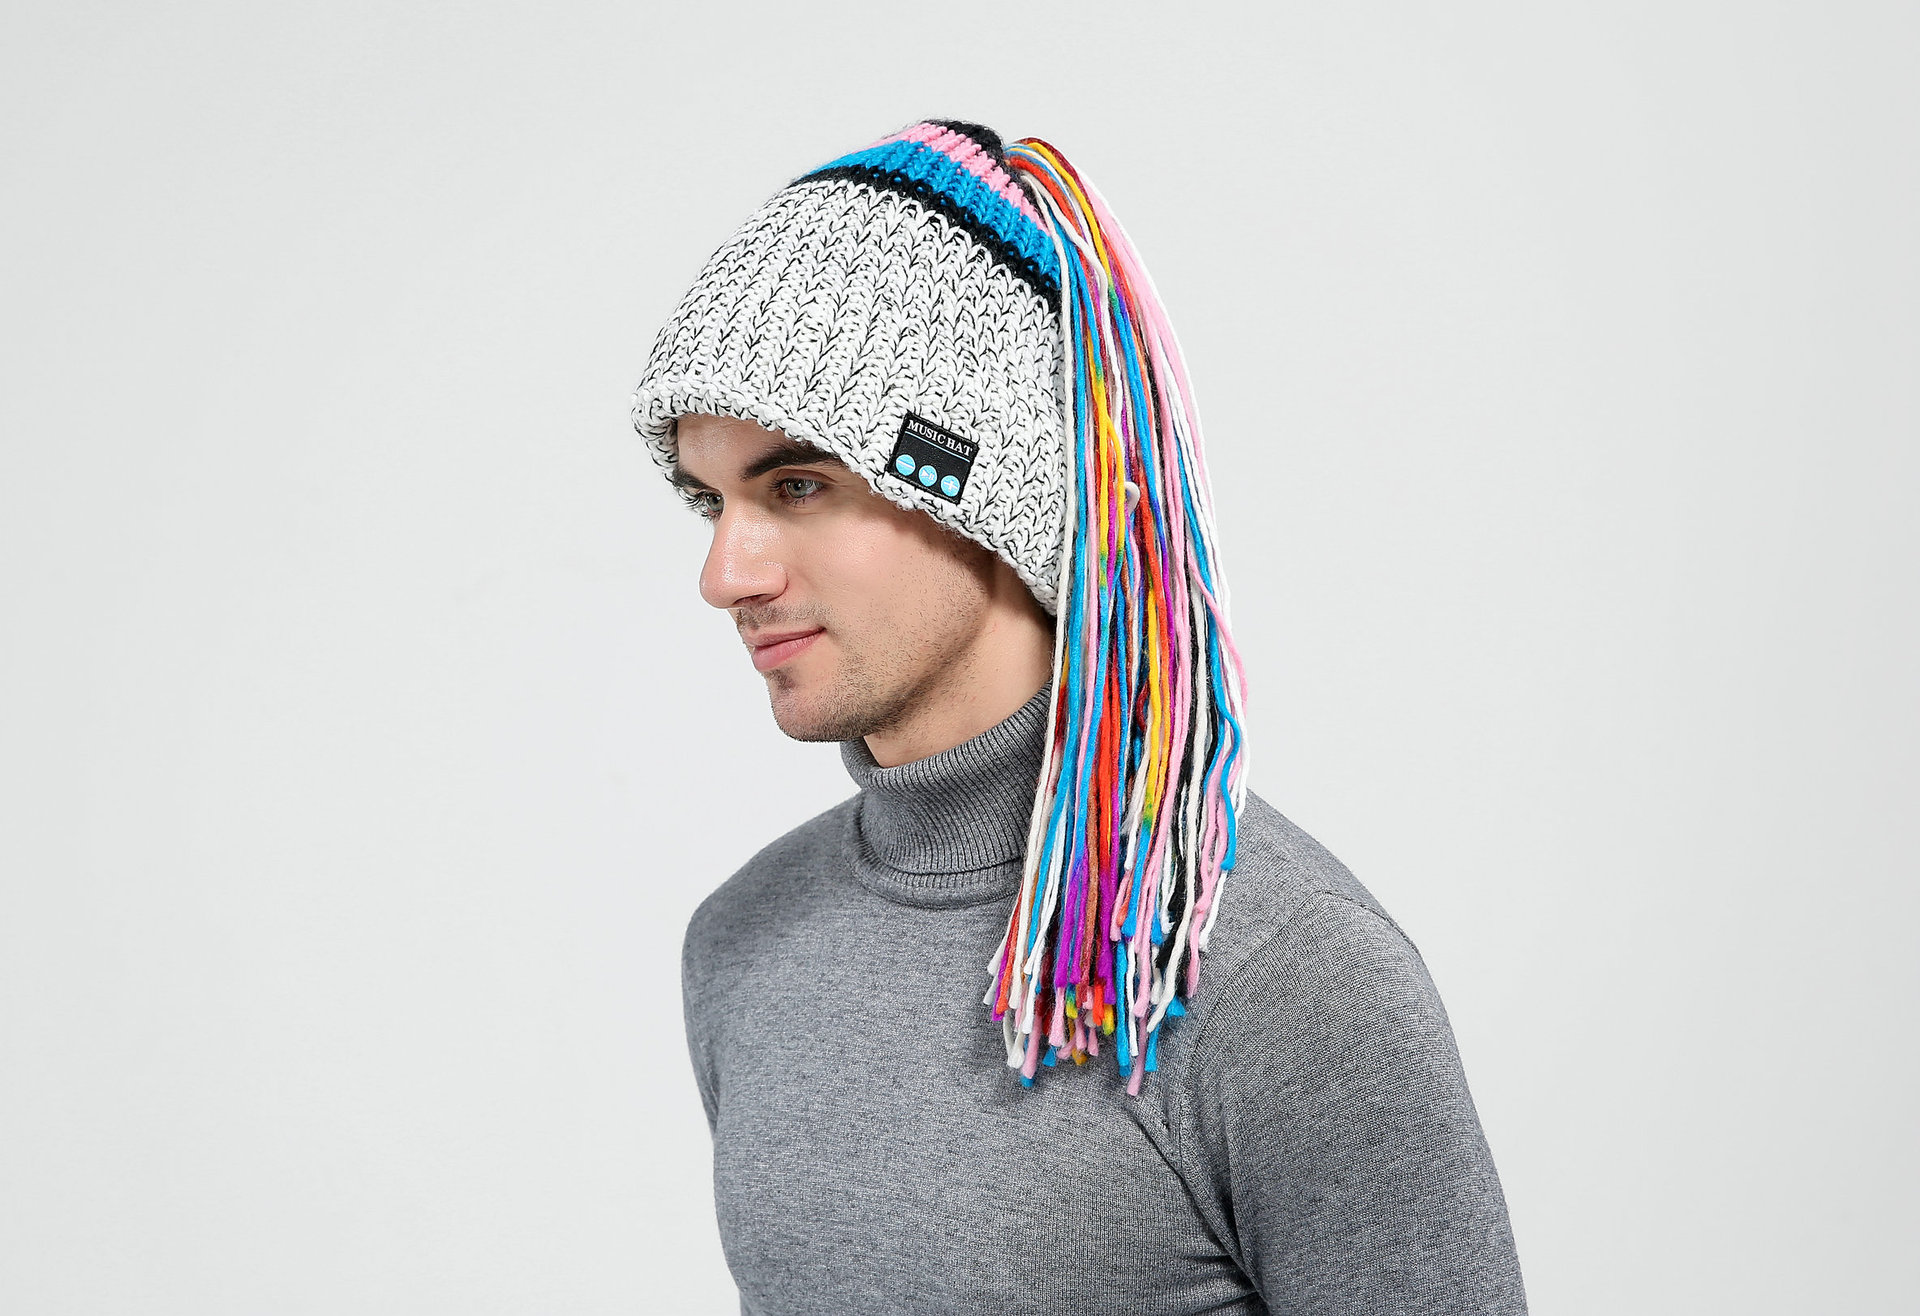 Clothing - Chic Winter Warm Knit Bluetooth Beanie with Wireless Headphone Headset for Outdoor Sport